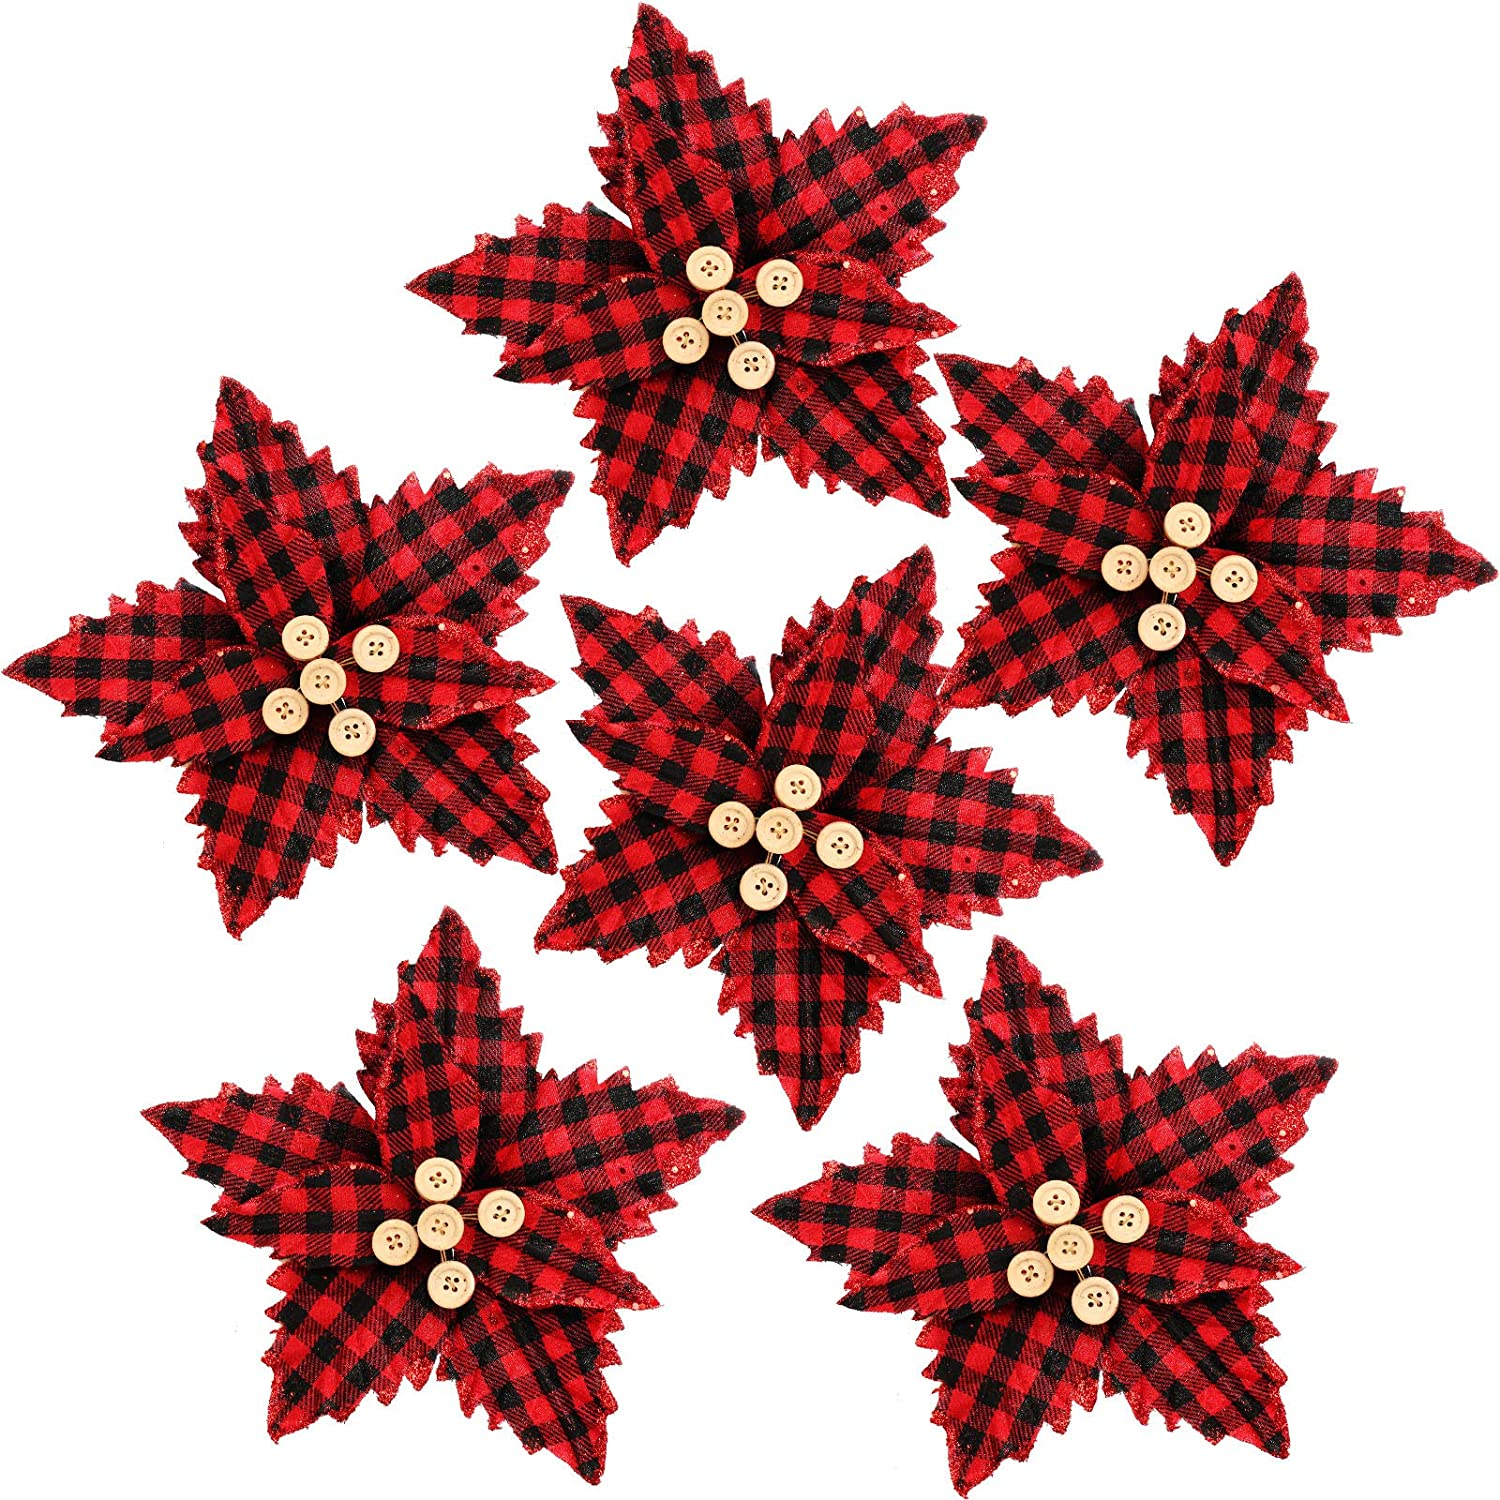 FUNARTY 10 Pieces Red Buffalo Plaid Poinsettias Christmas Tree Ornaments Artificial Christmas Flowers for Christmas Tree Wreaths Garland Holiday Decorations, 8.3-Inch